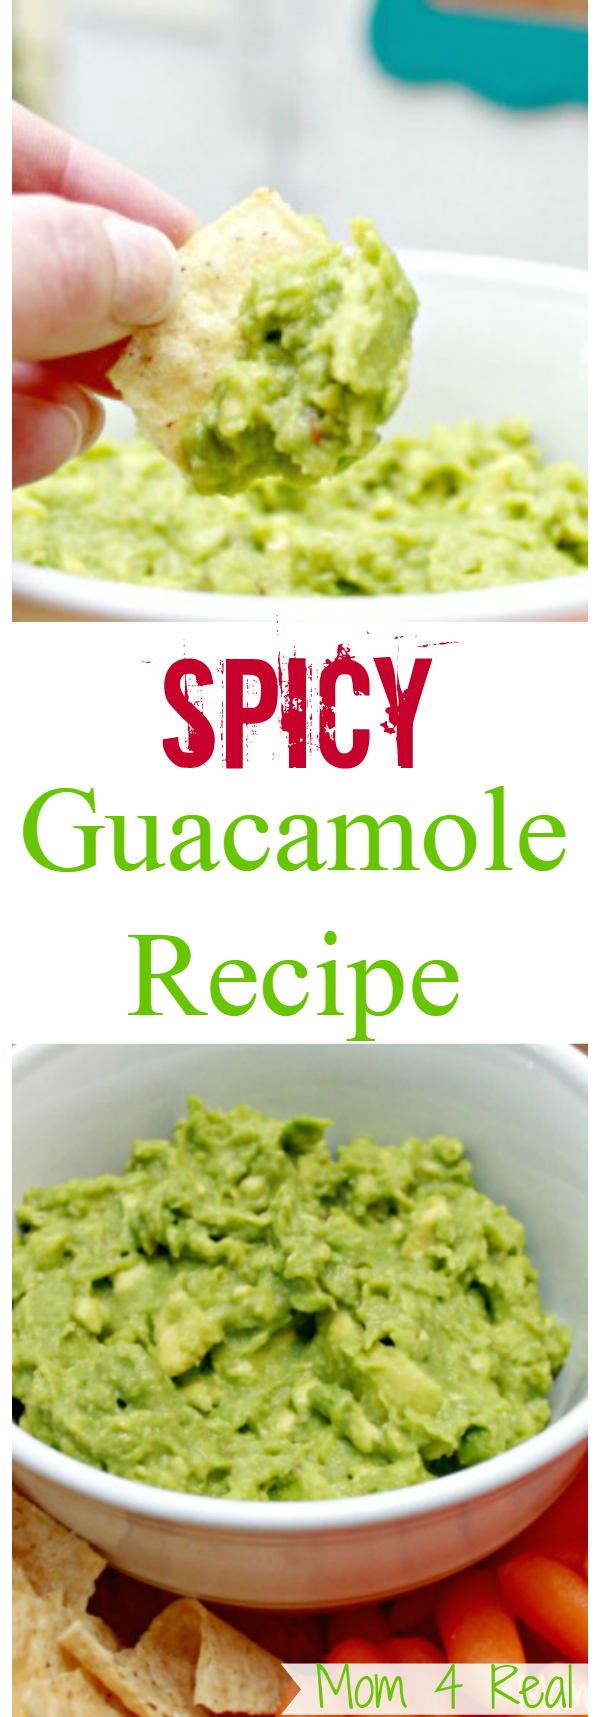 Super Fresh Spicy Guacamole Recipe